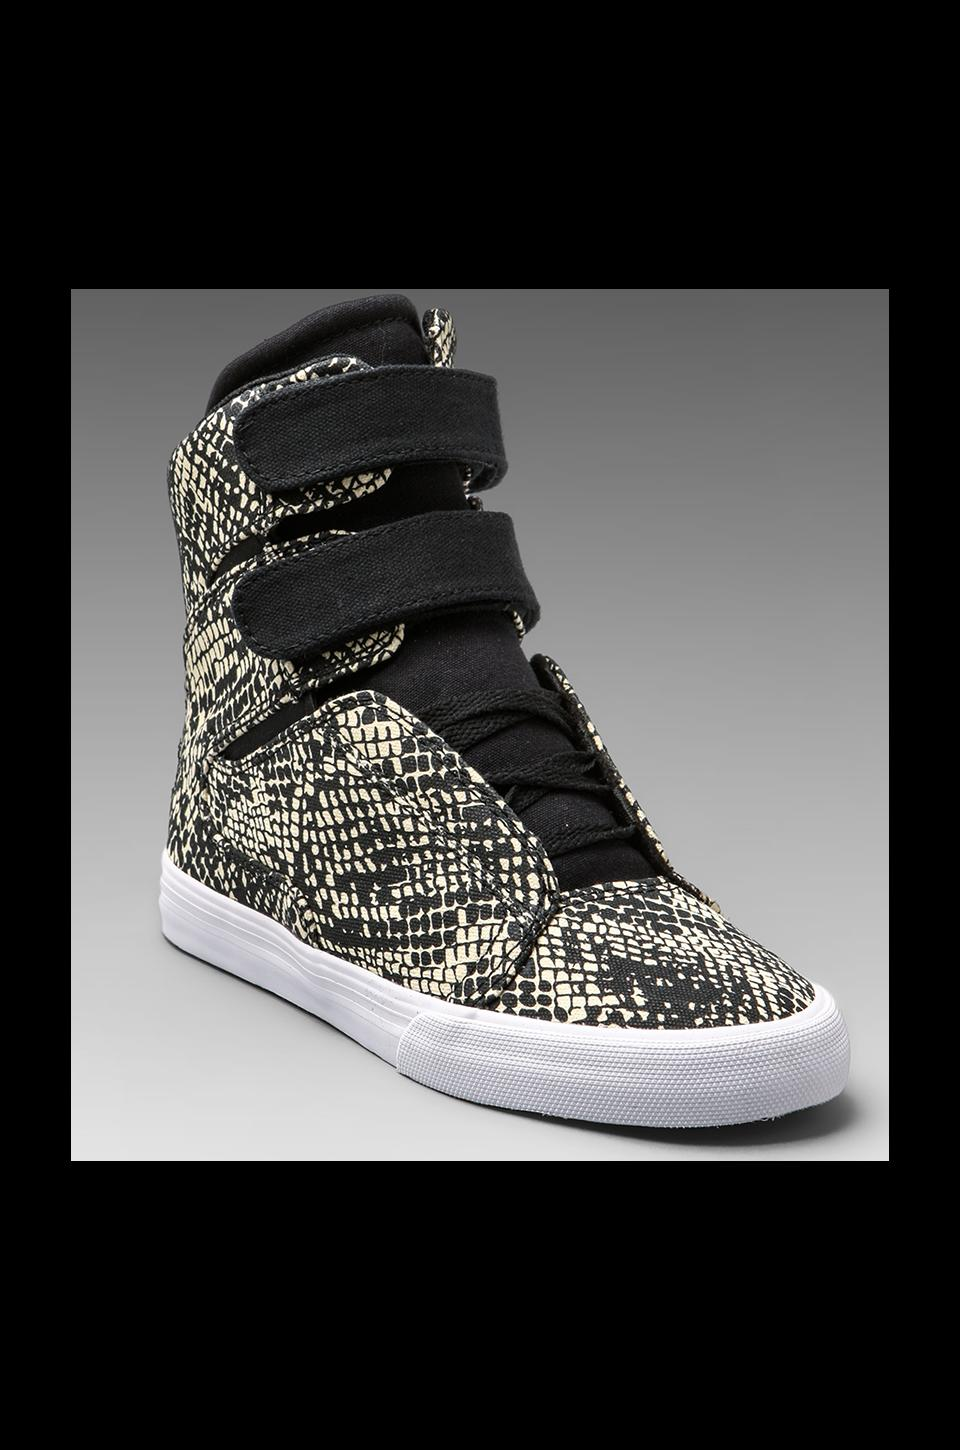 Supra Society Sneaker in Black Snake